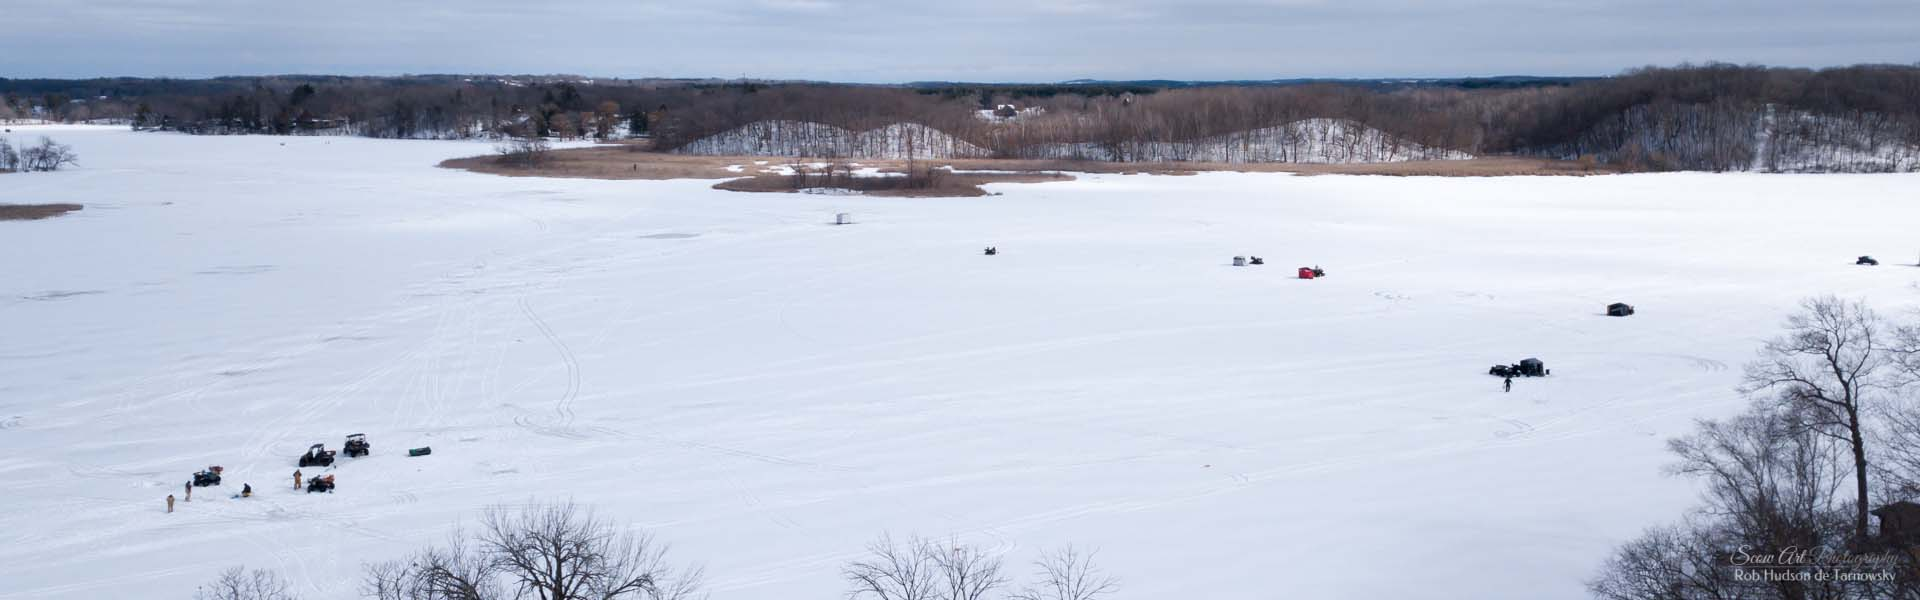 Ice fishing in the winter.